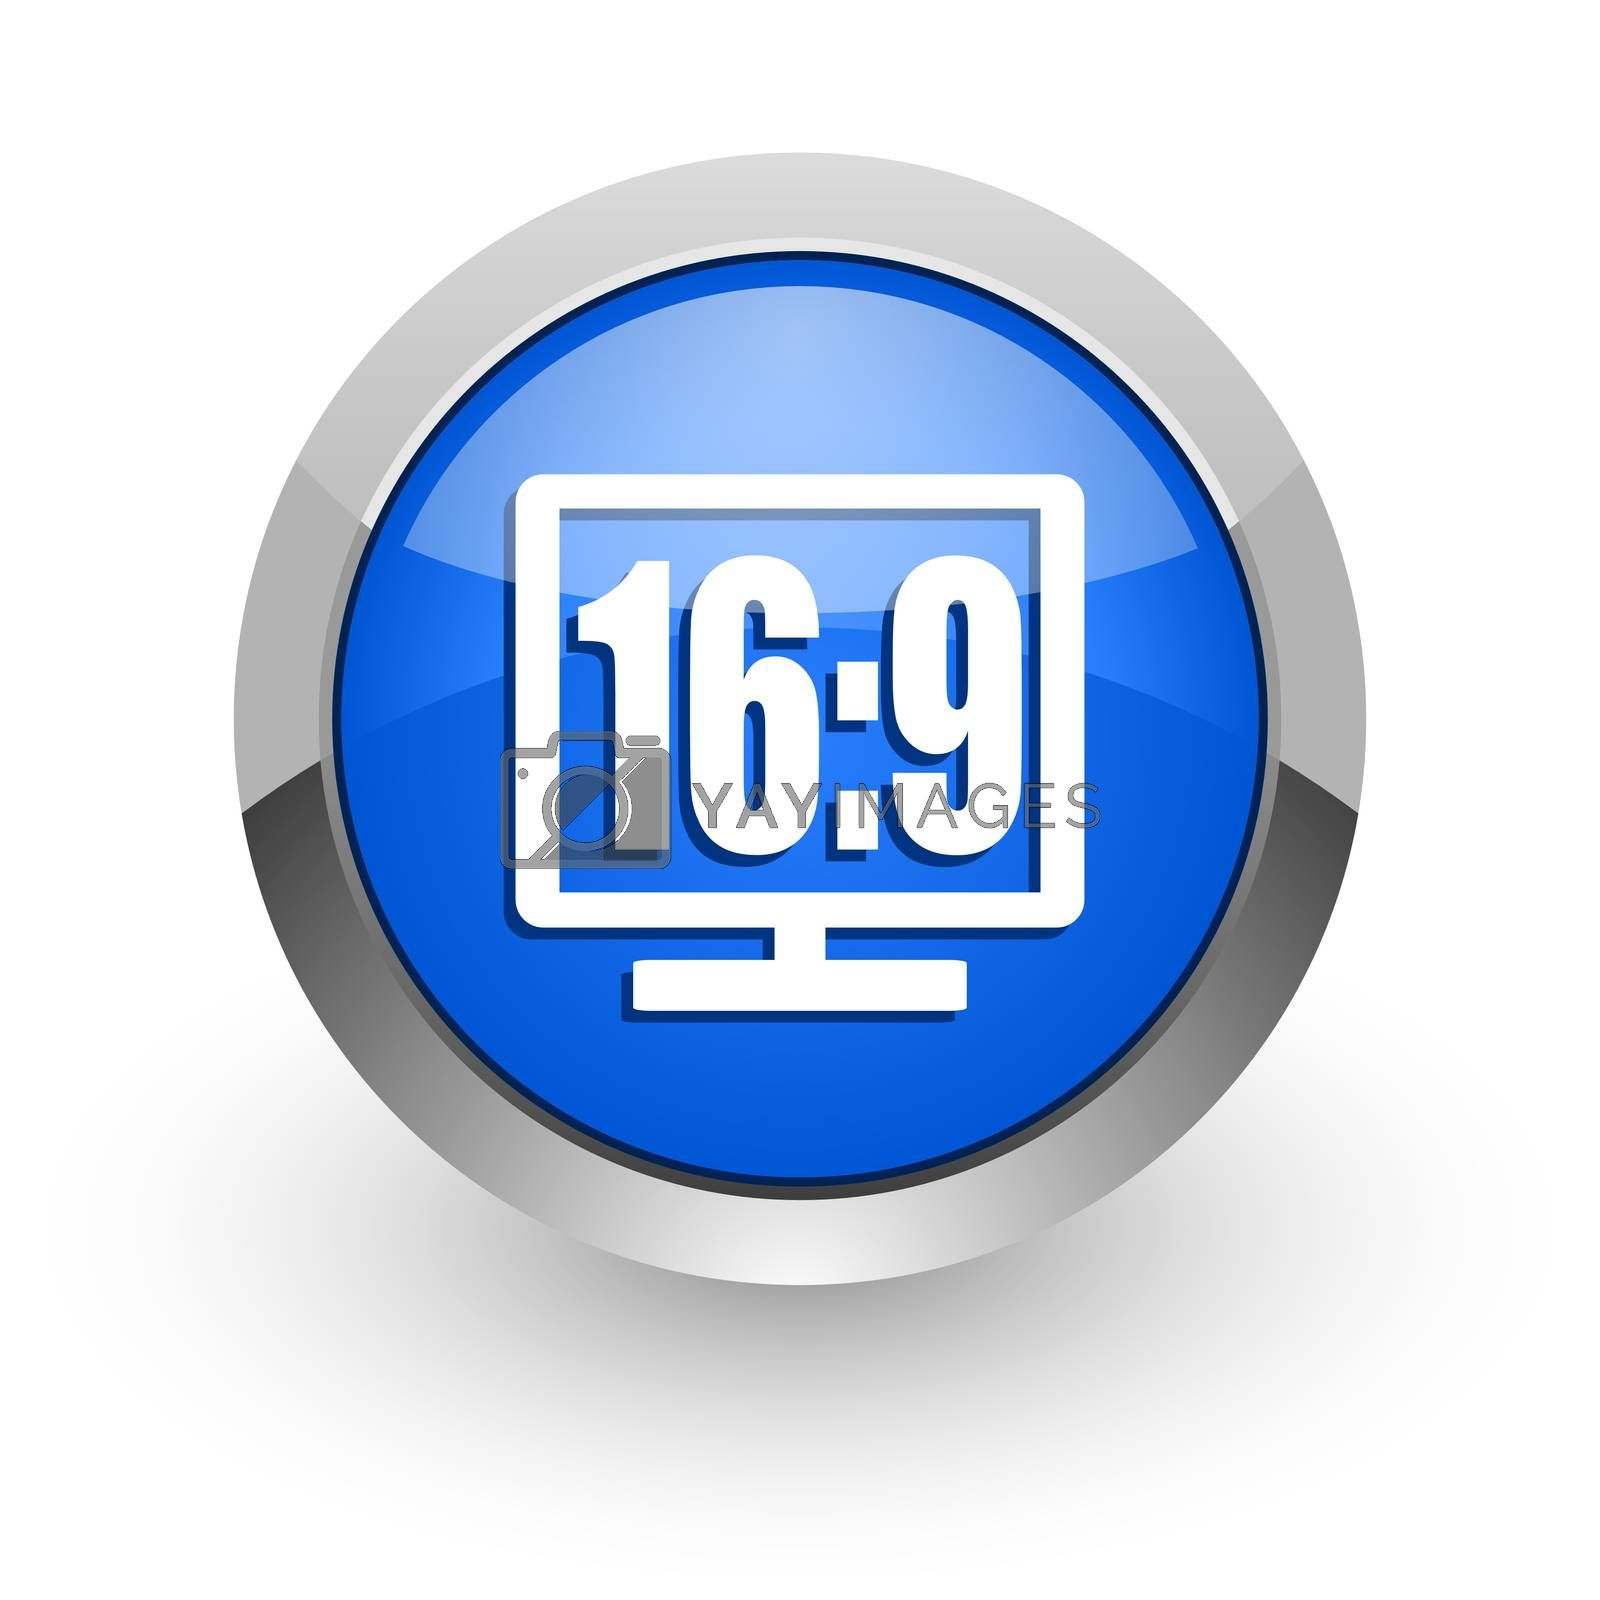 Royalty free image of 16 9 display blue glossy web icon by alexwhite